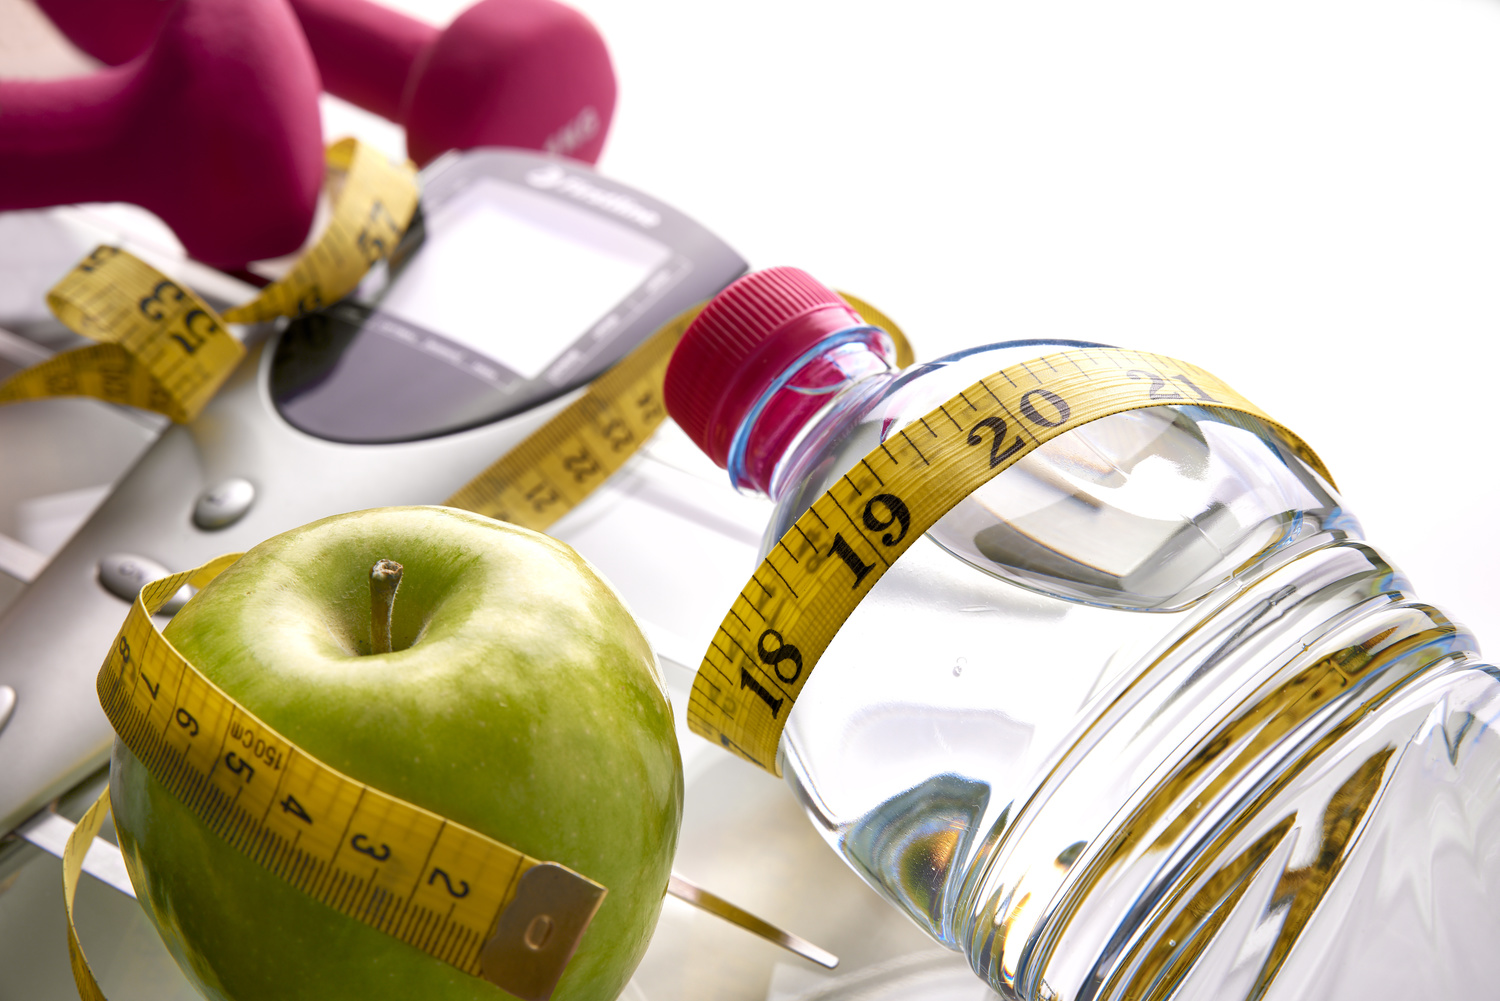 Easy diet plan to lose 60 pounds image 4